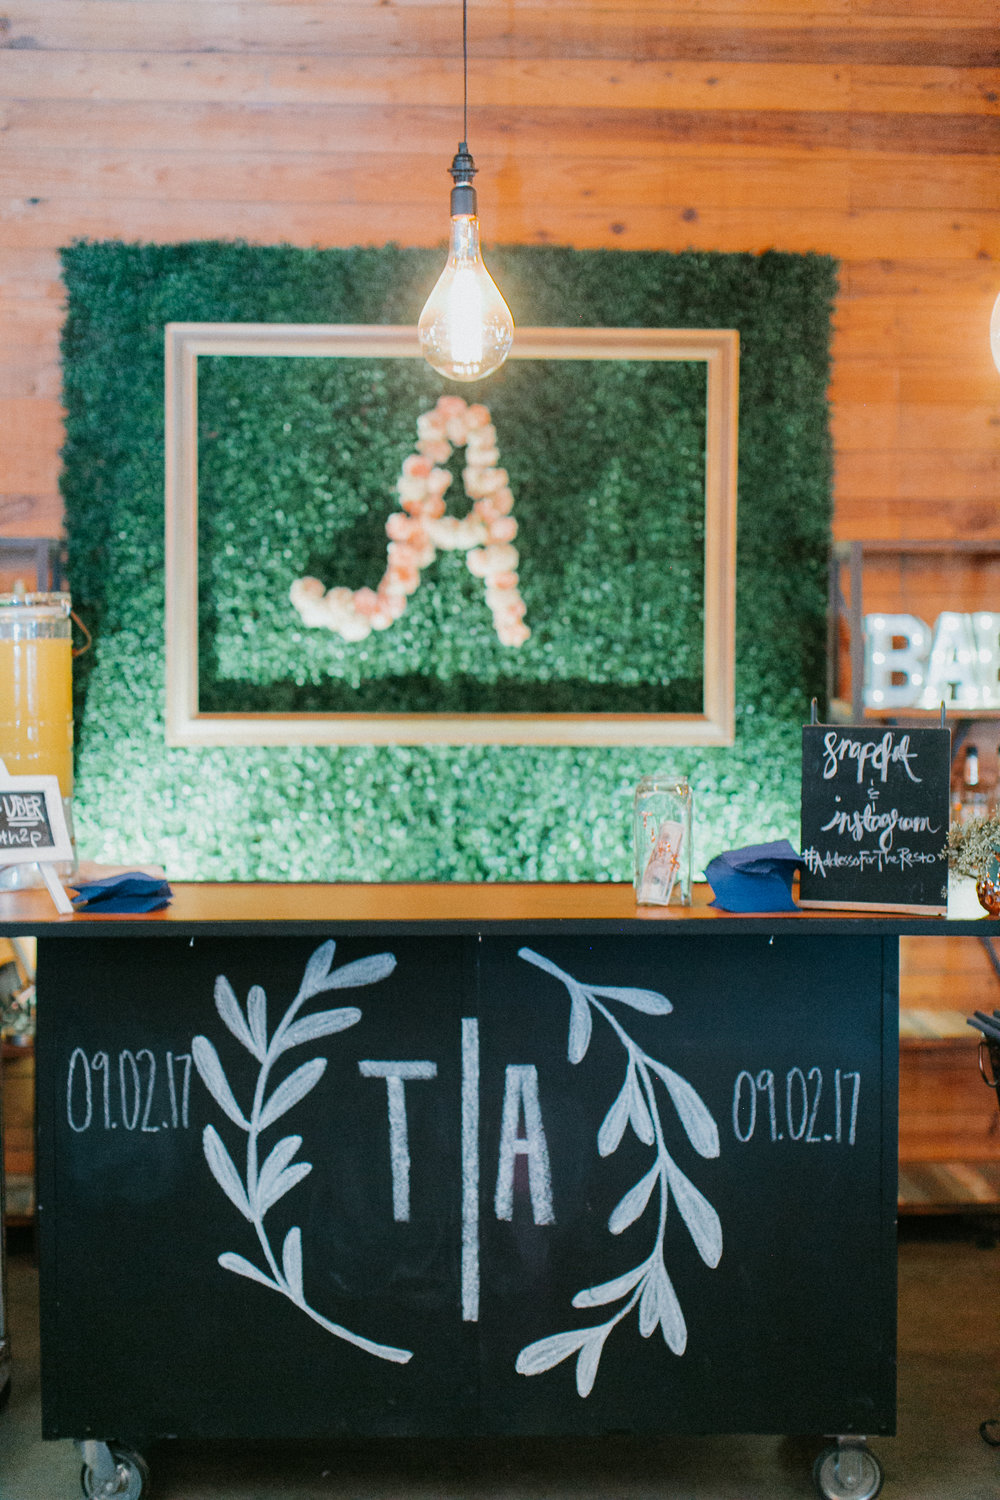 trevor_akila_wedding-425.jpg